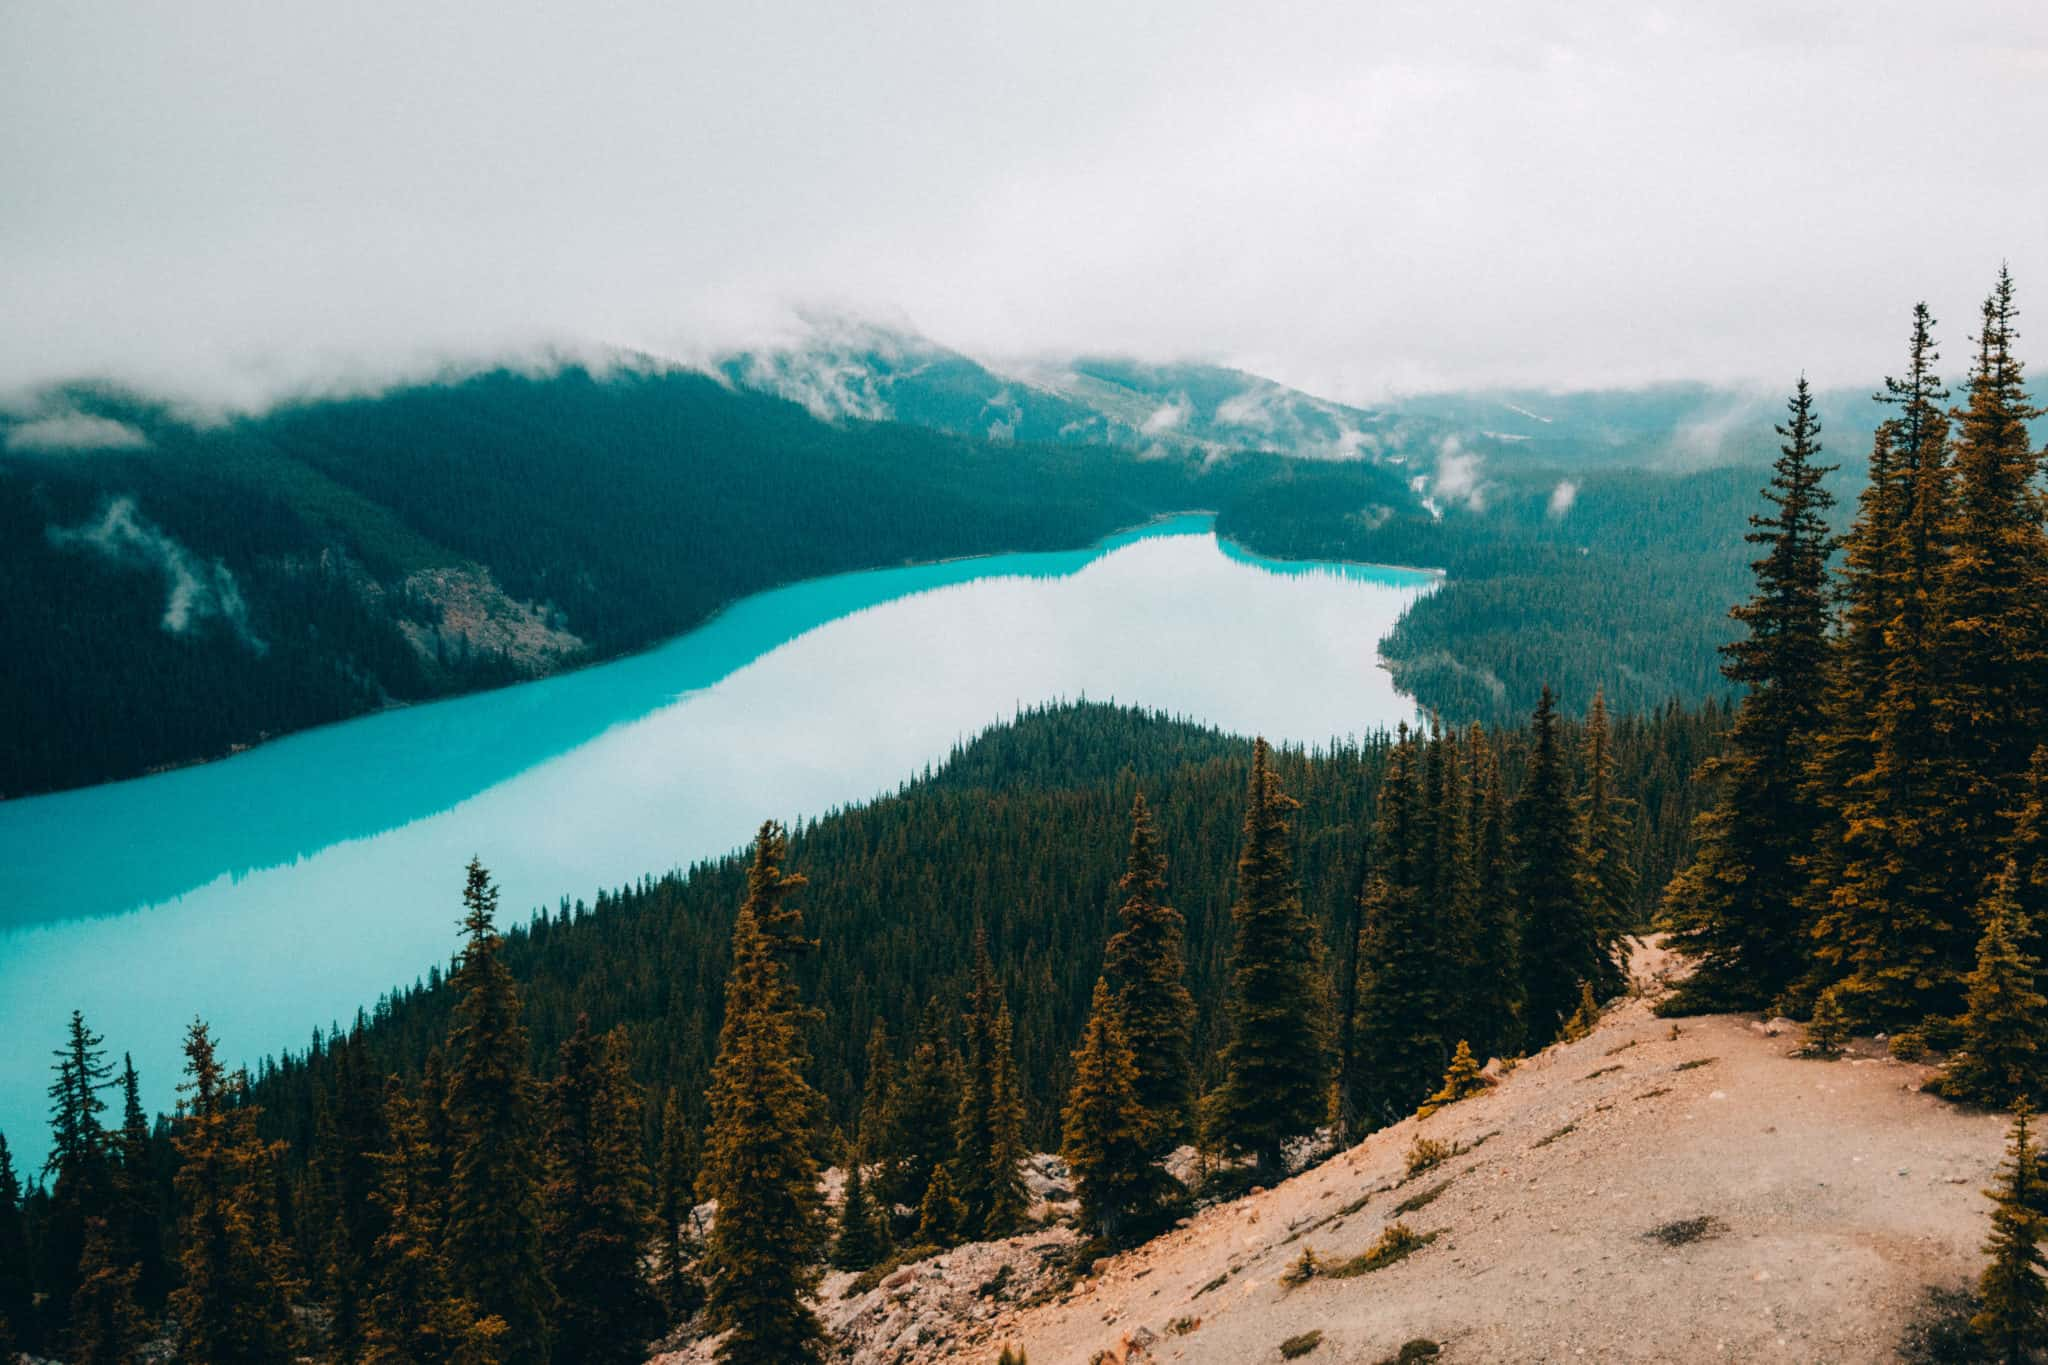 Peyto Lake, Turquoise blue glacial fed lake, Banff National Park